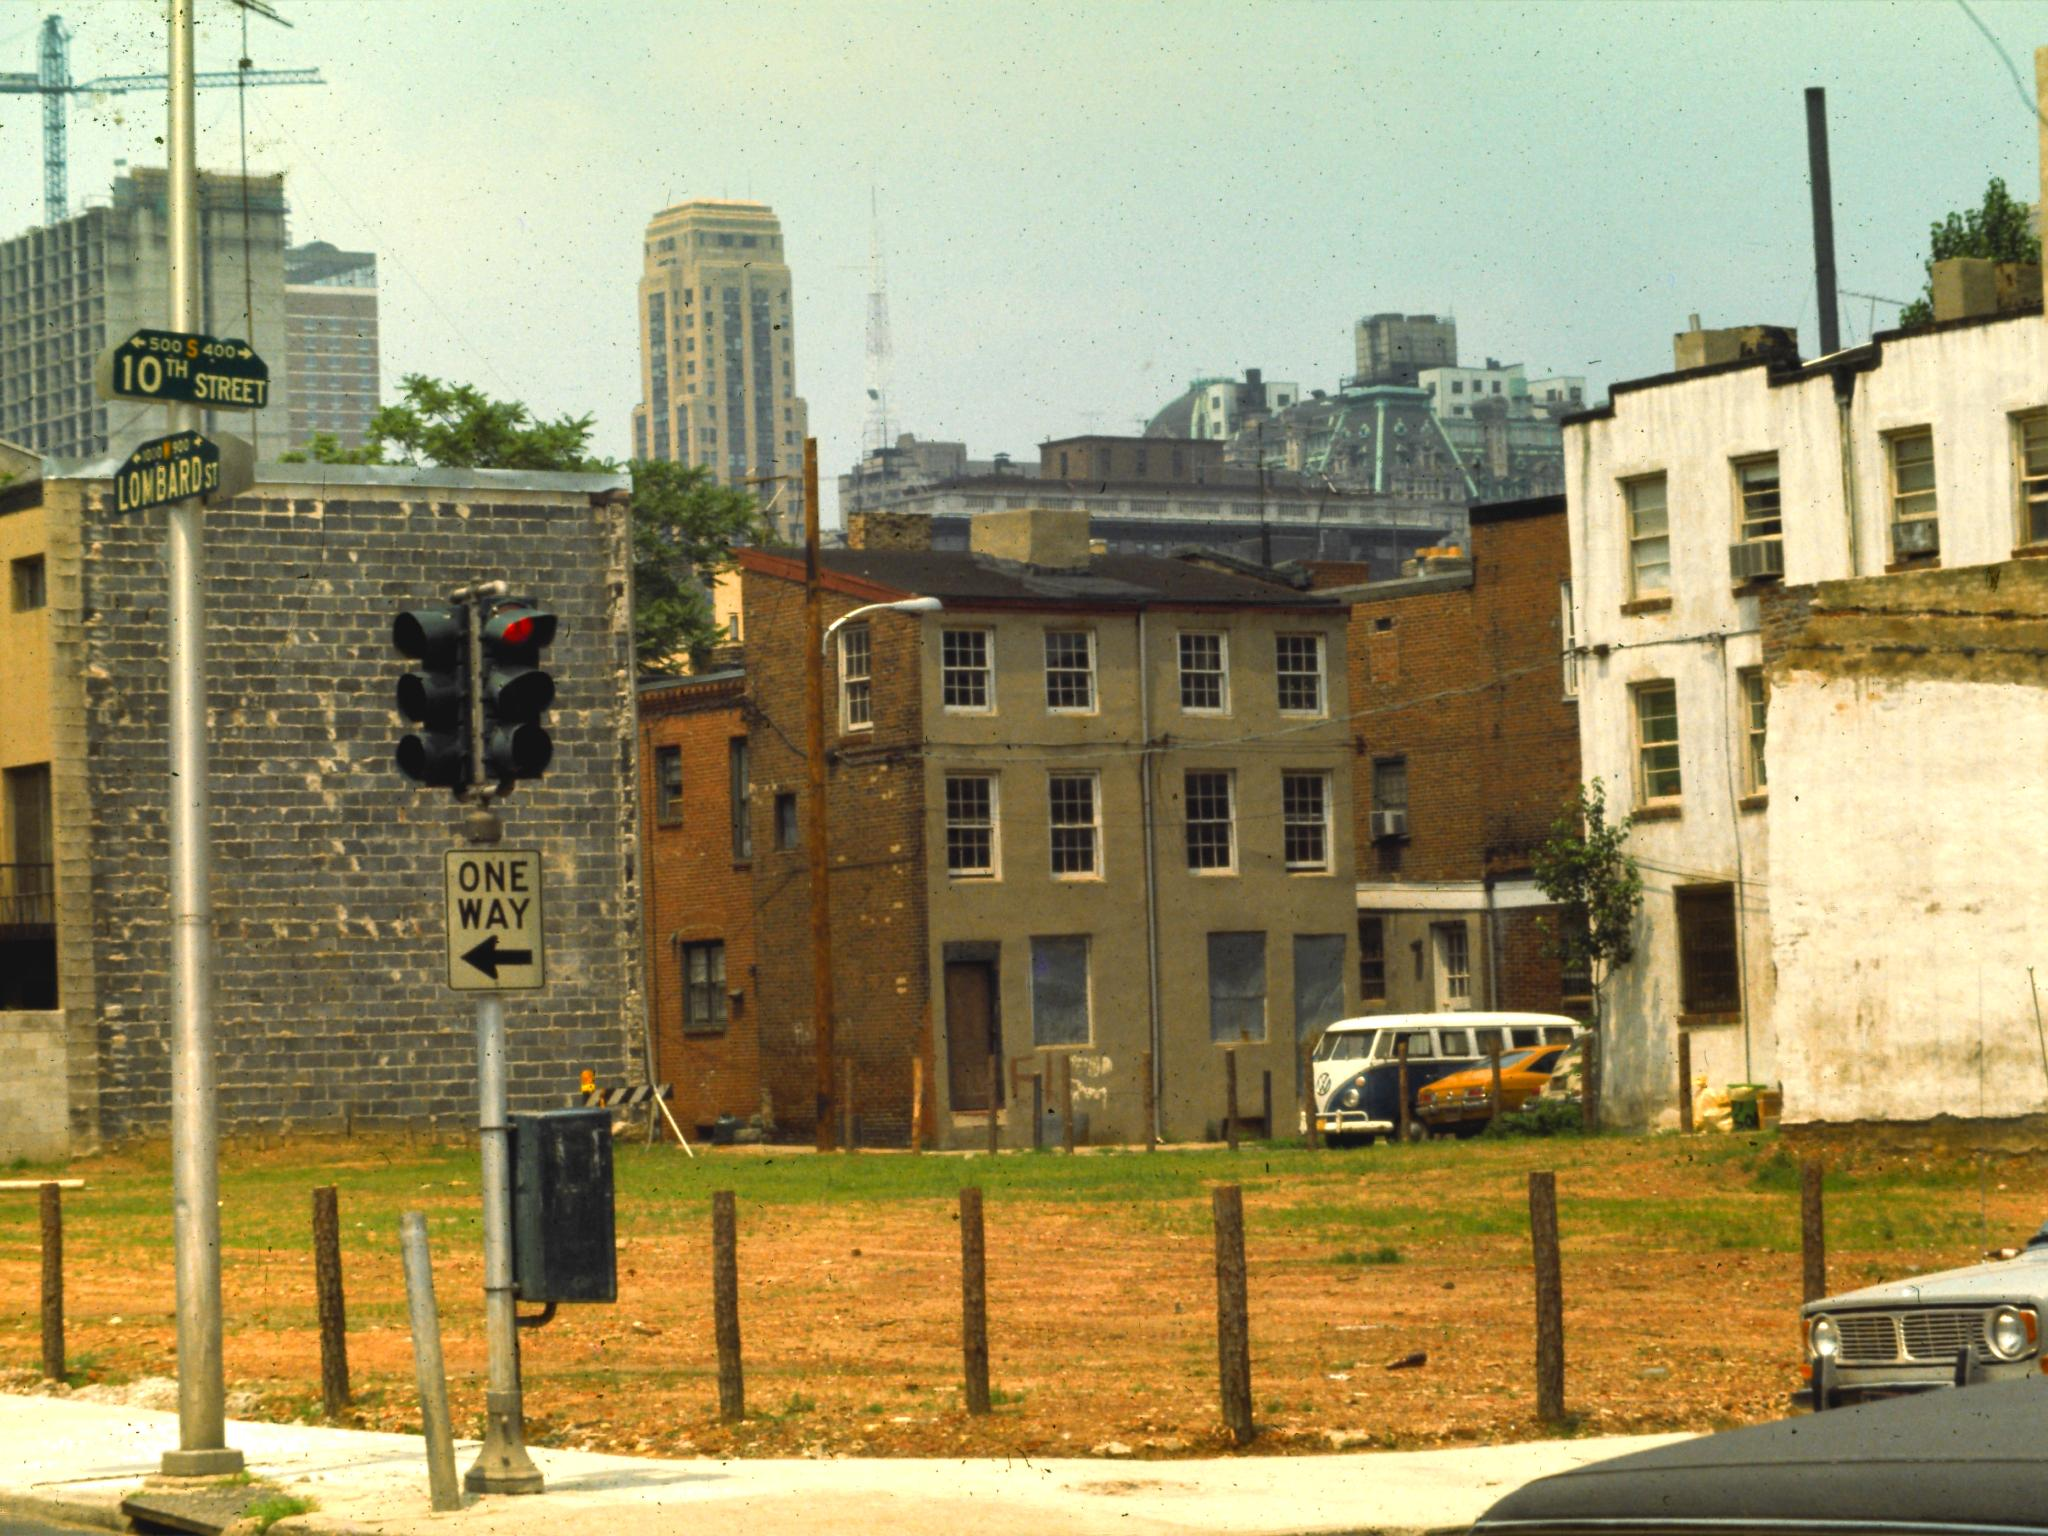 10th and Lombard, after demolition